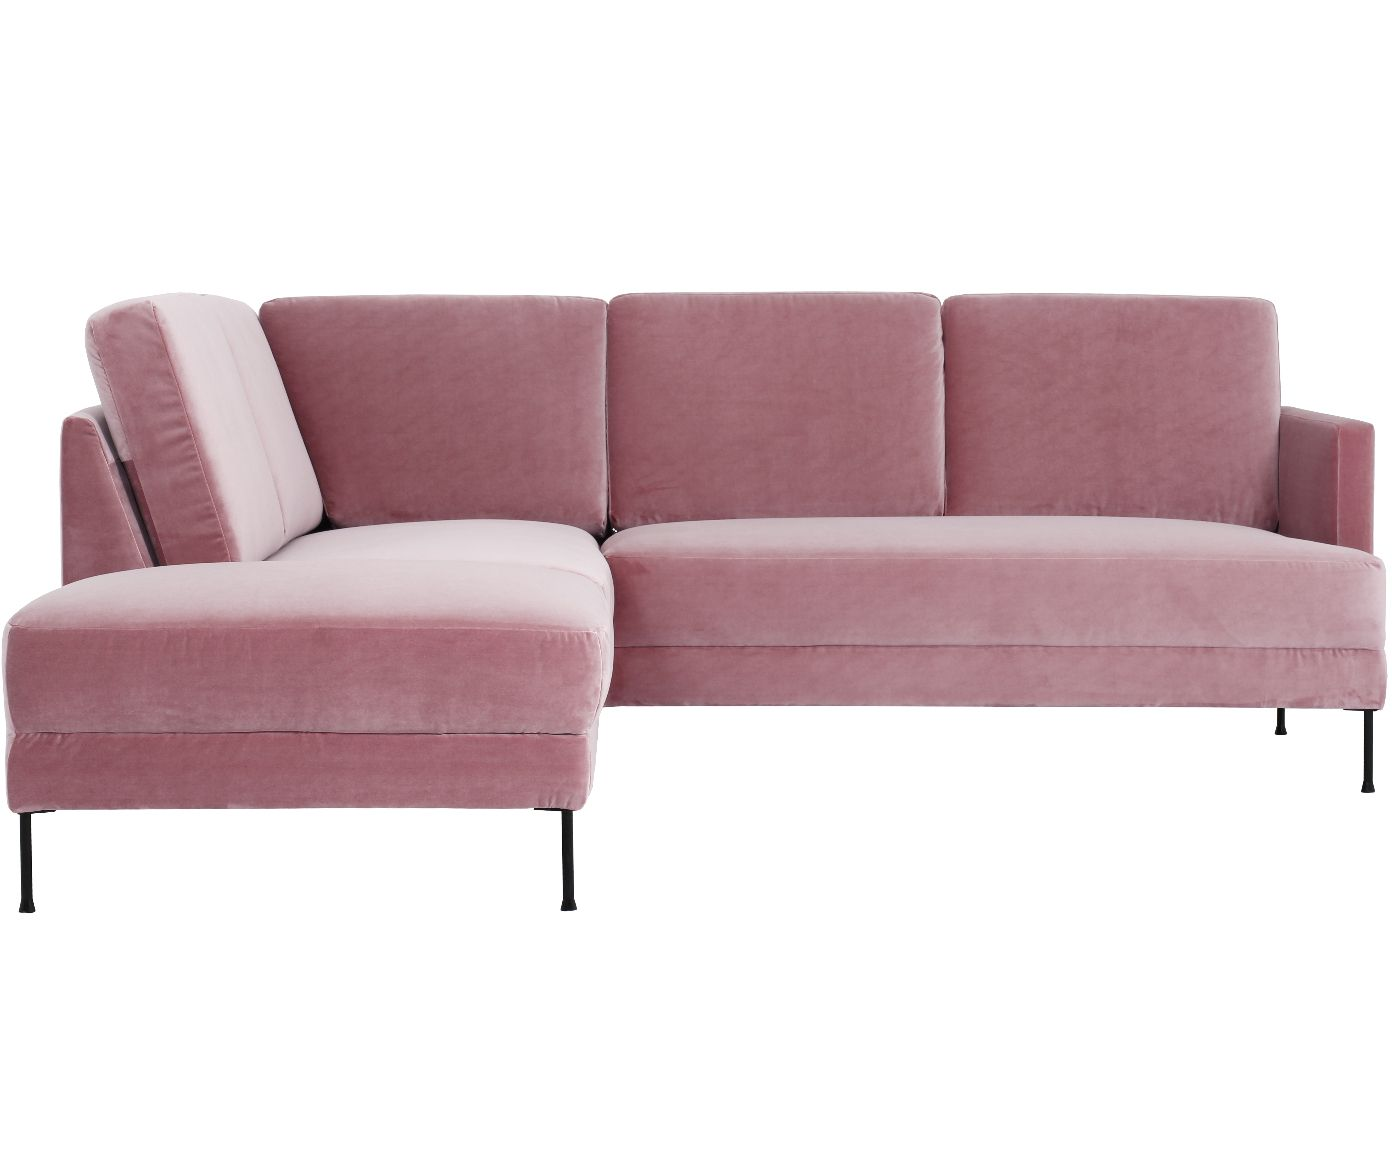 Samt Ecksofa Fluente In Rosa Westwingnow Couch Country